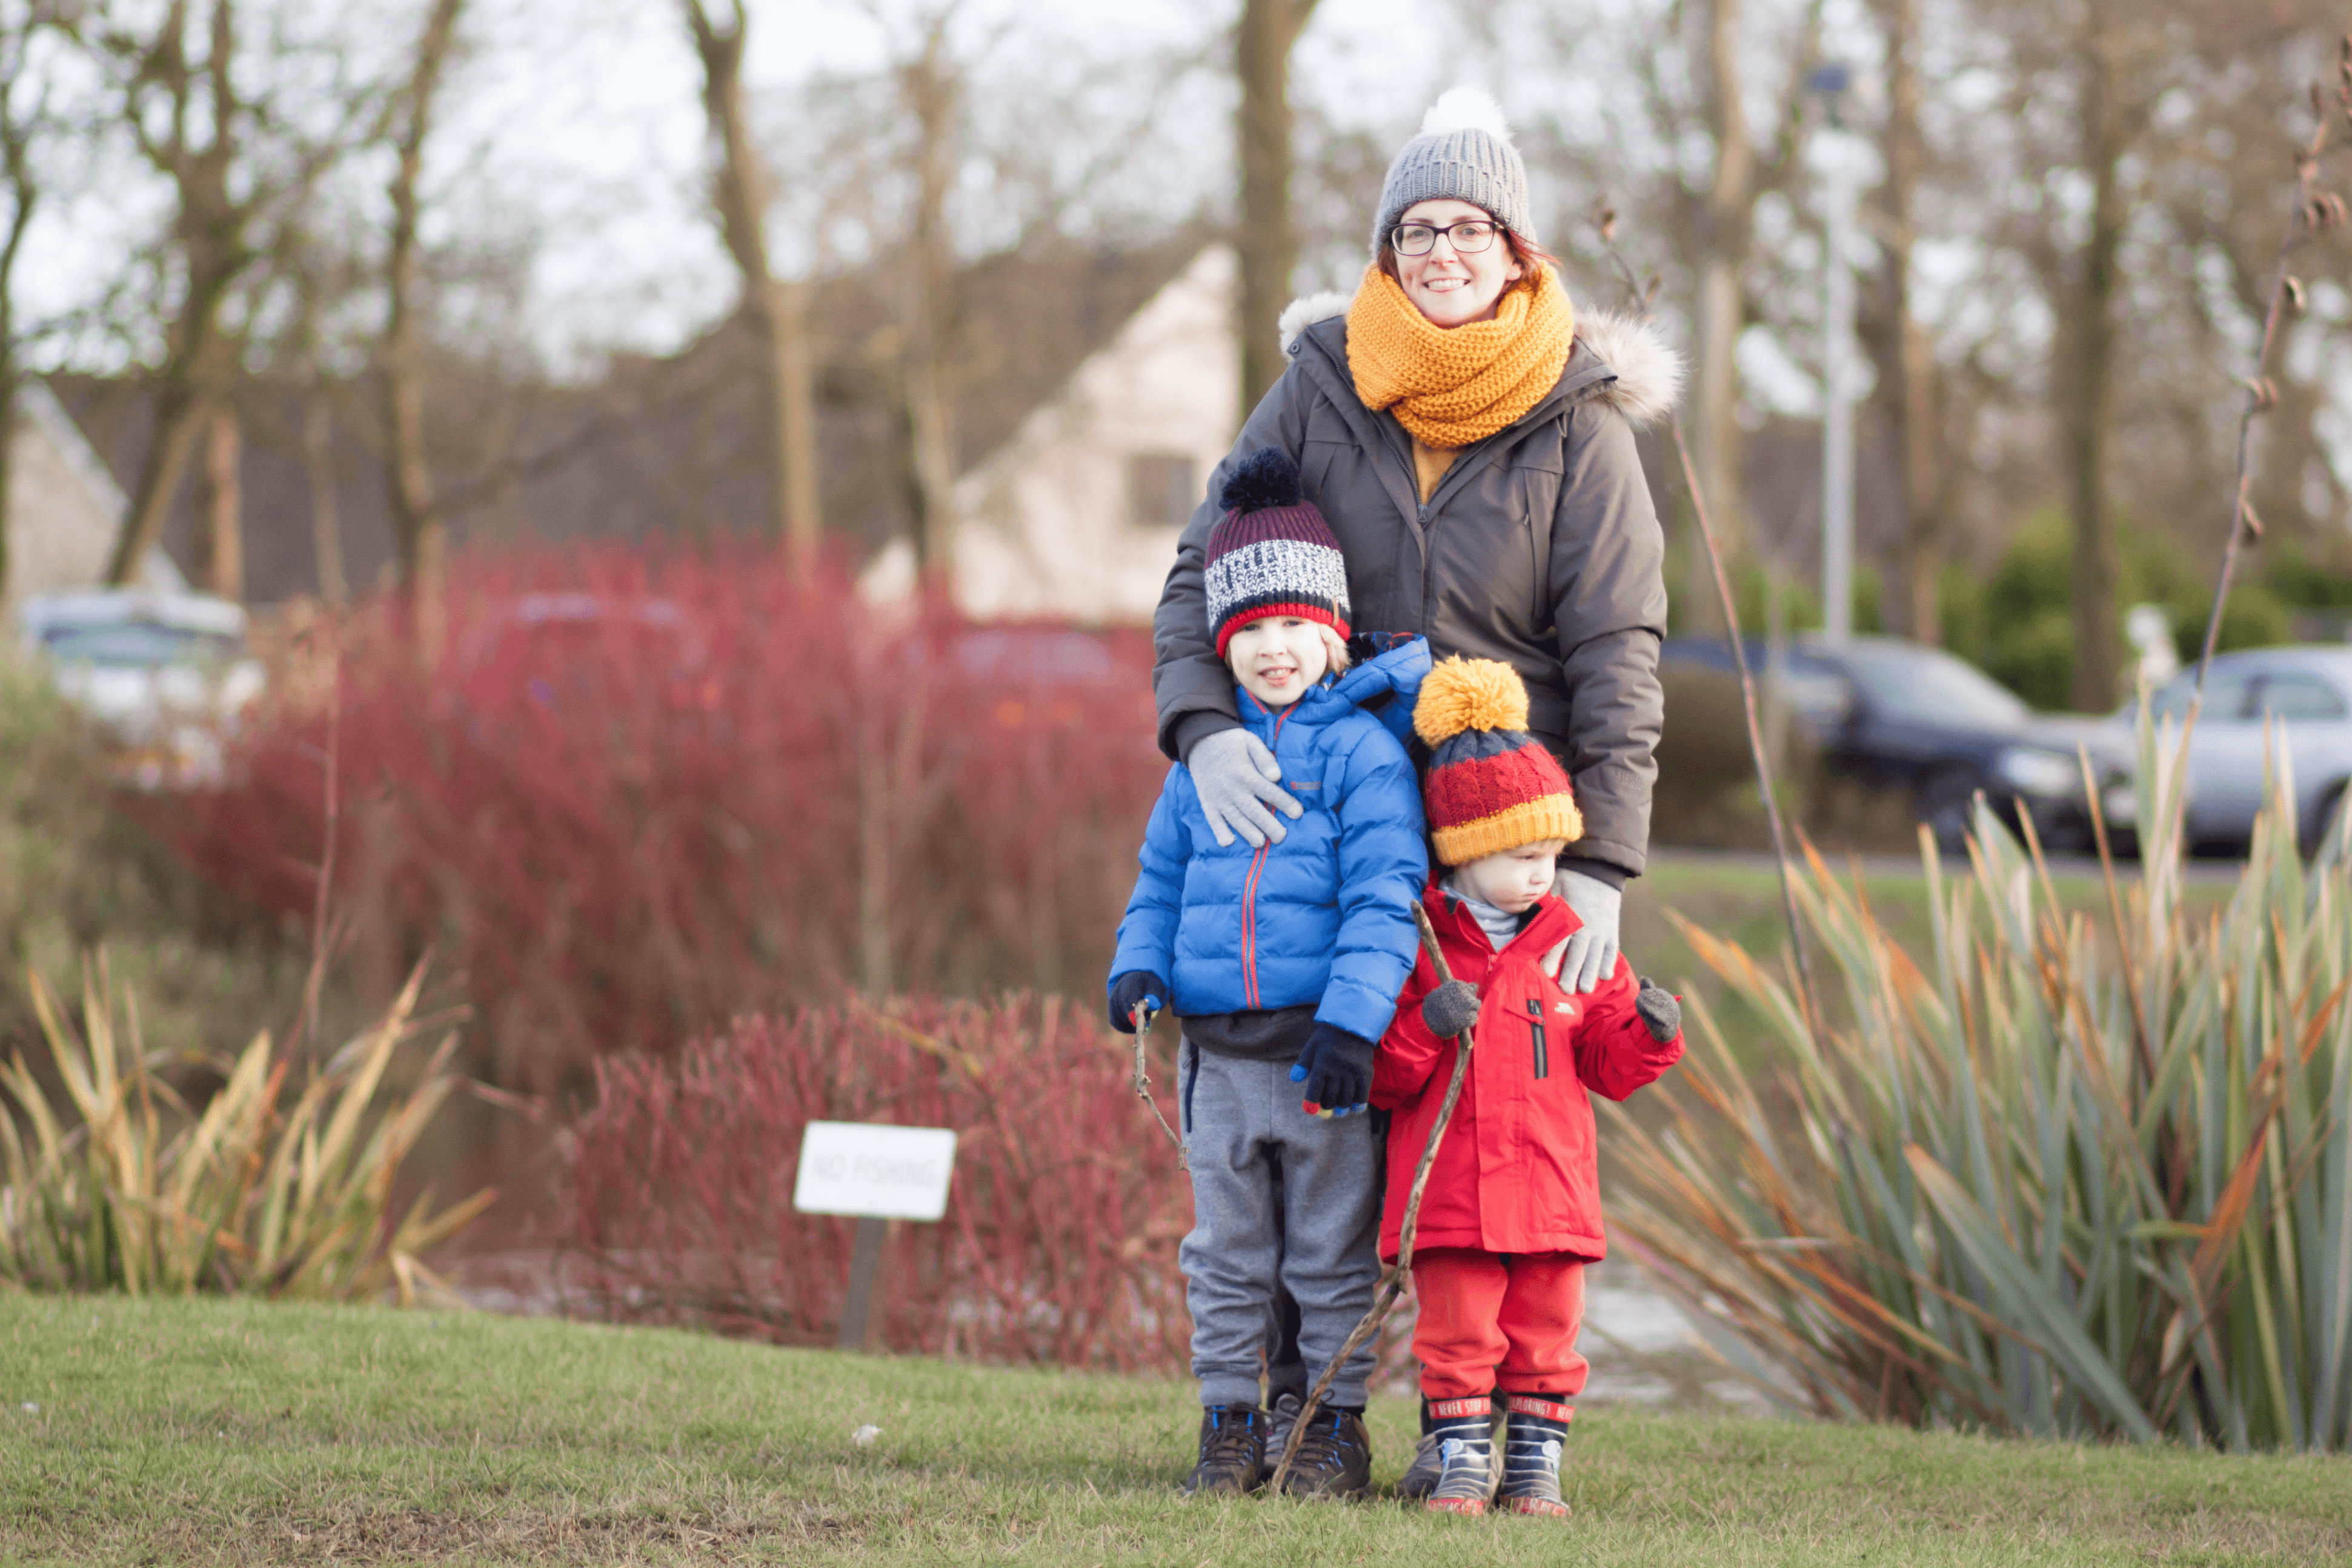 Me and my two boys - my feelings on gender disappointment